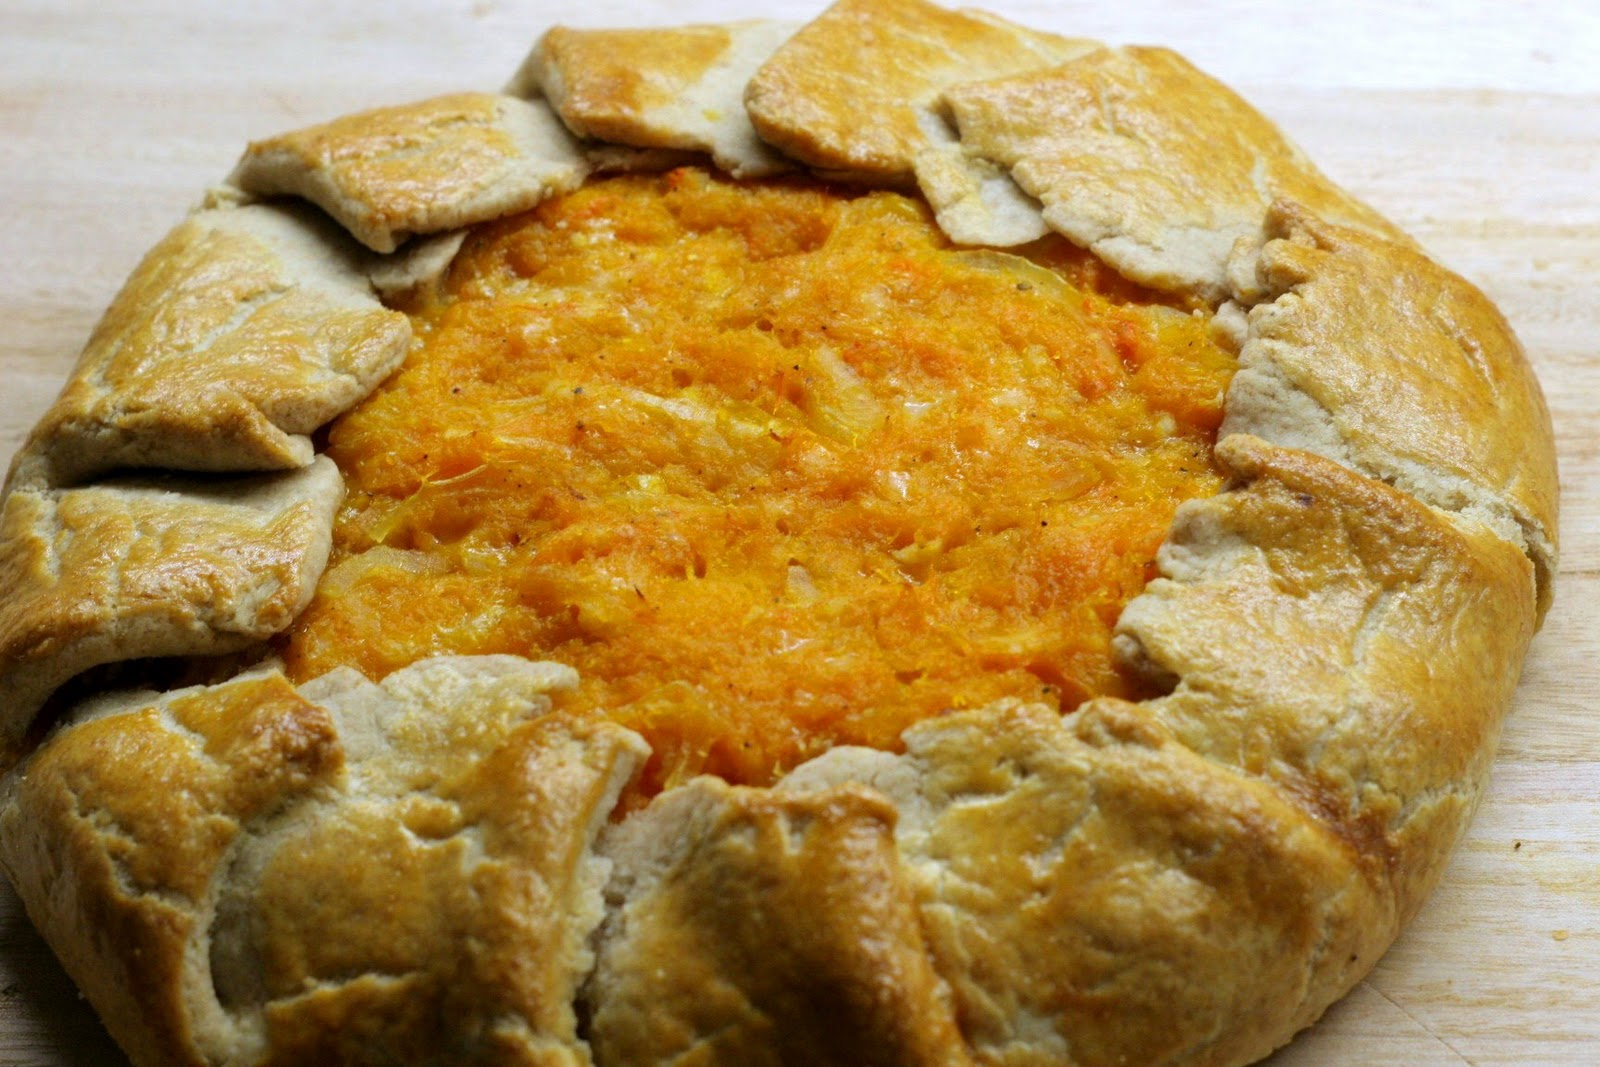 Four seasons of food: Butternut squash galette